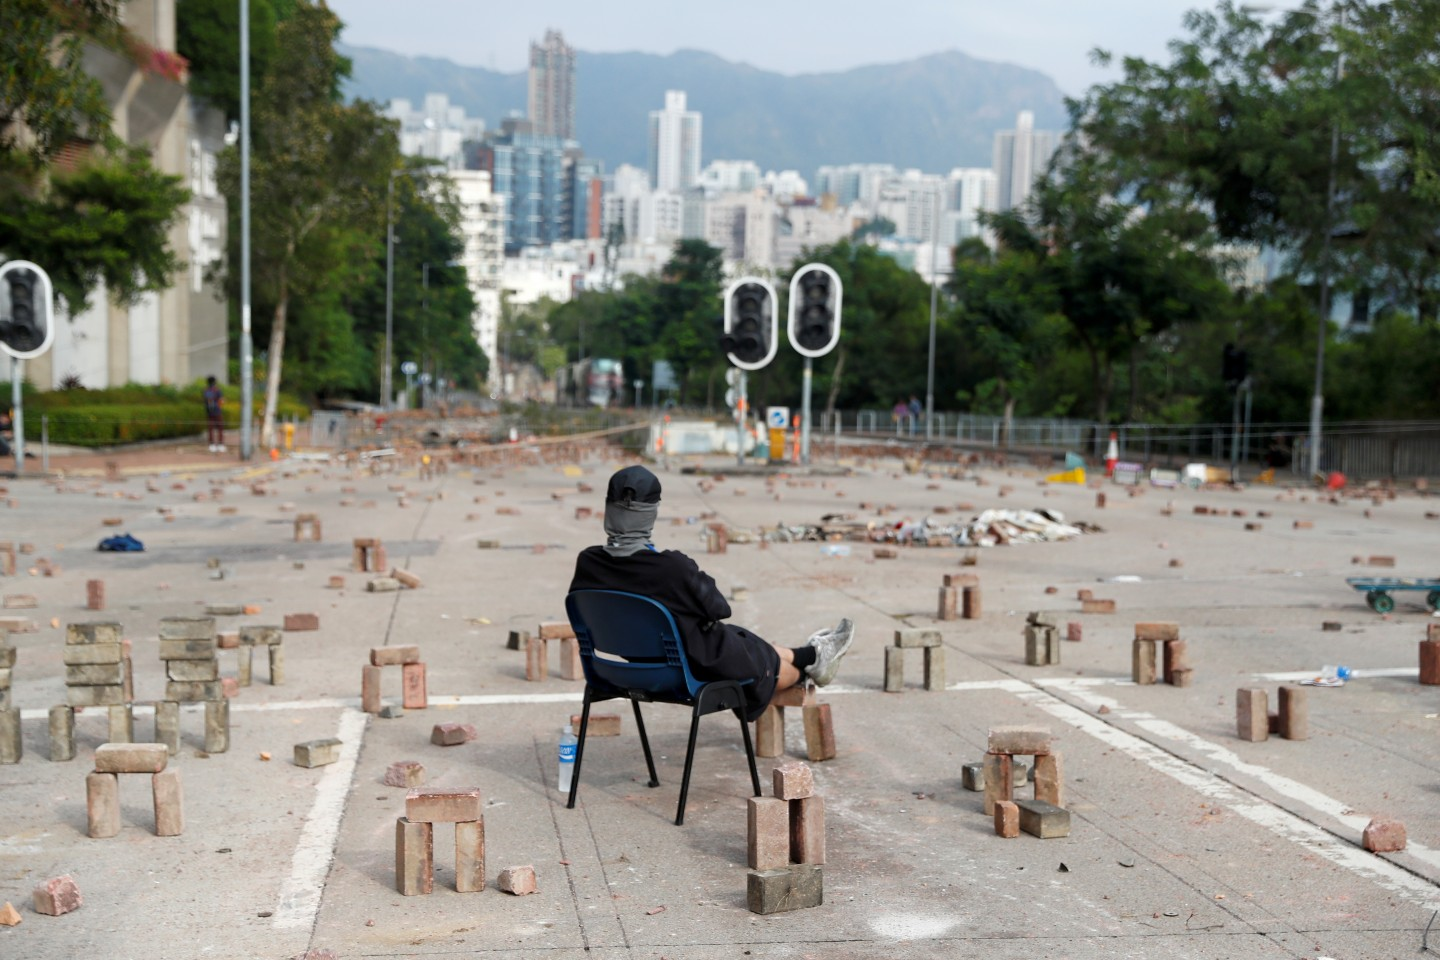 A protester sits amid a road block outside City University in Kowloon Tong on November 12, 2019. (REUTERS/Thomas Peter)